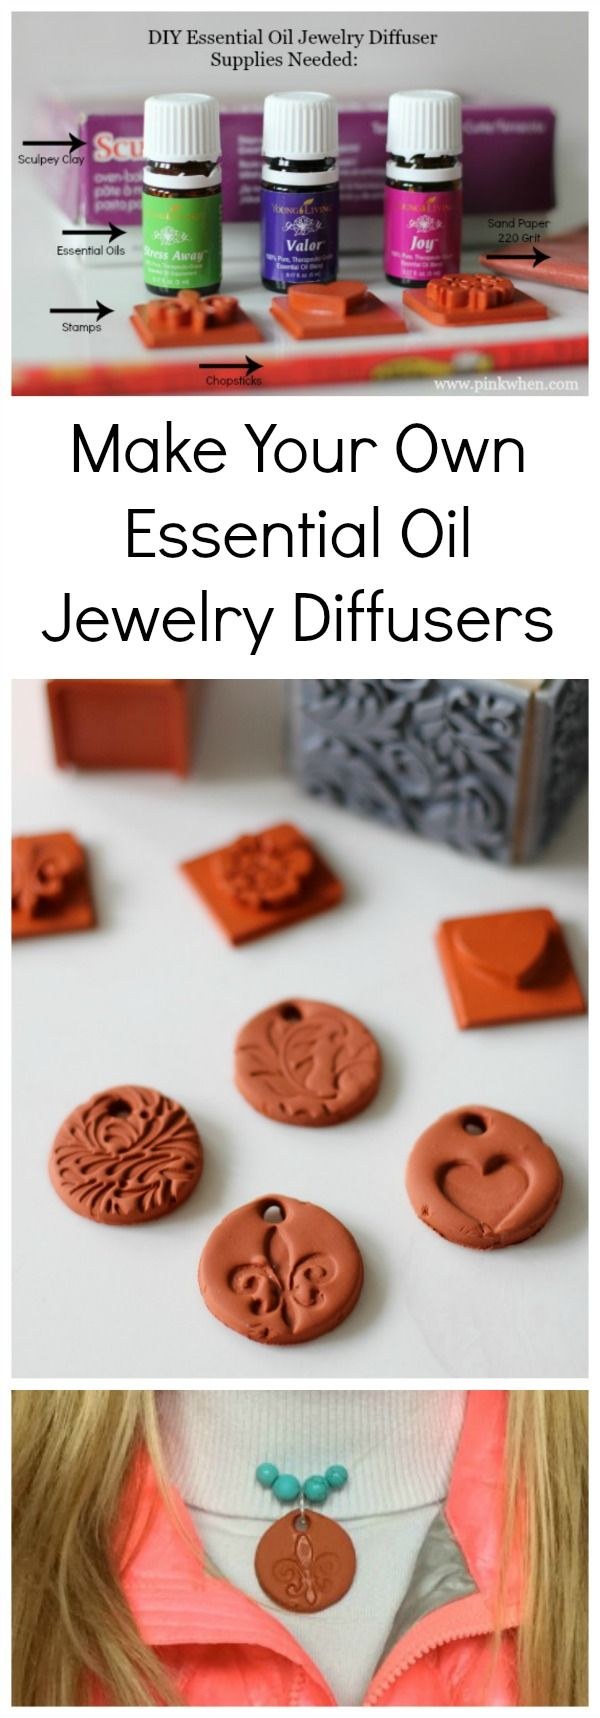 Make your own clay jewelry and essential oil diffusers with this simple step by step tutorial with video. #essentialoil #jewelry #diy